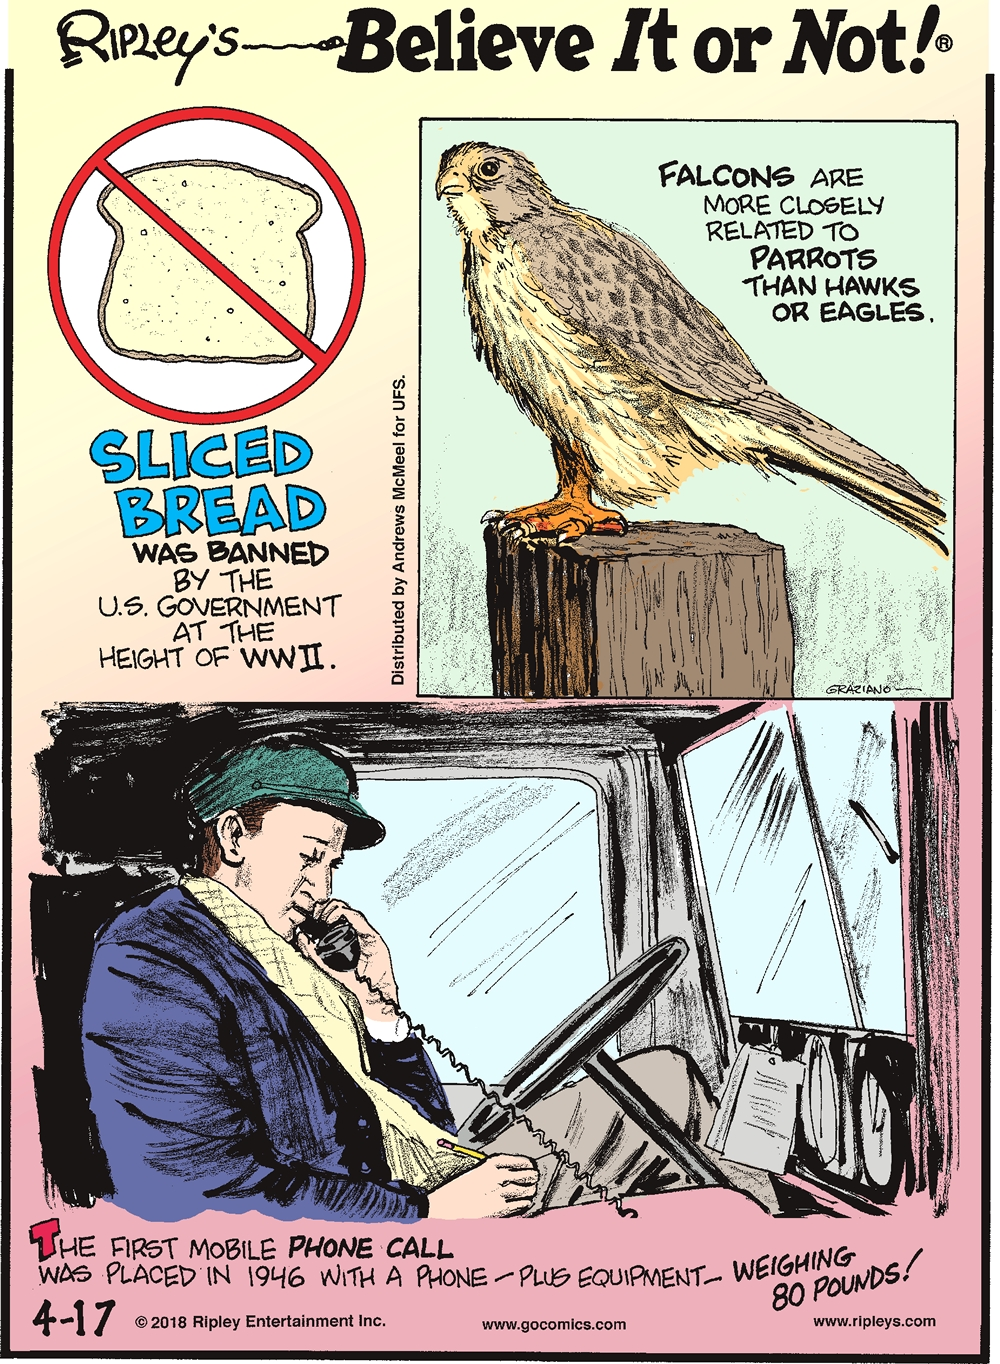 Sliced bread was banned by the U.S. Government at the height of WWII.-------------------- Falcons are more closely related to parrots than hawks or eagles.-------------------- The first mobile phone call was placed in 1946 with a phone -plus equipment- weighing 80 pounds!